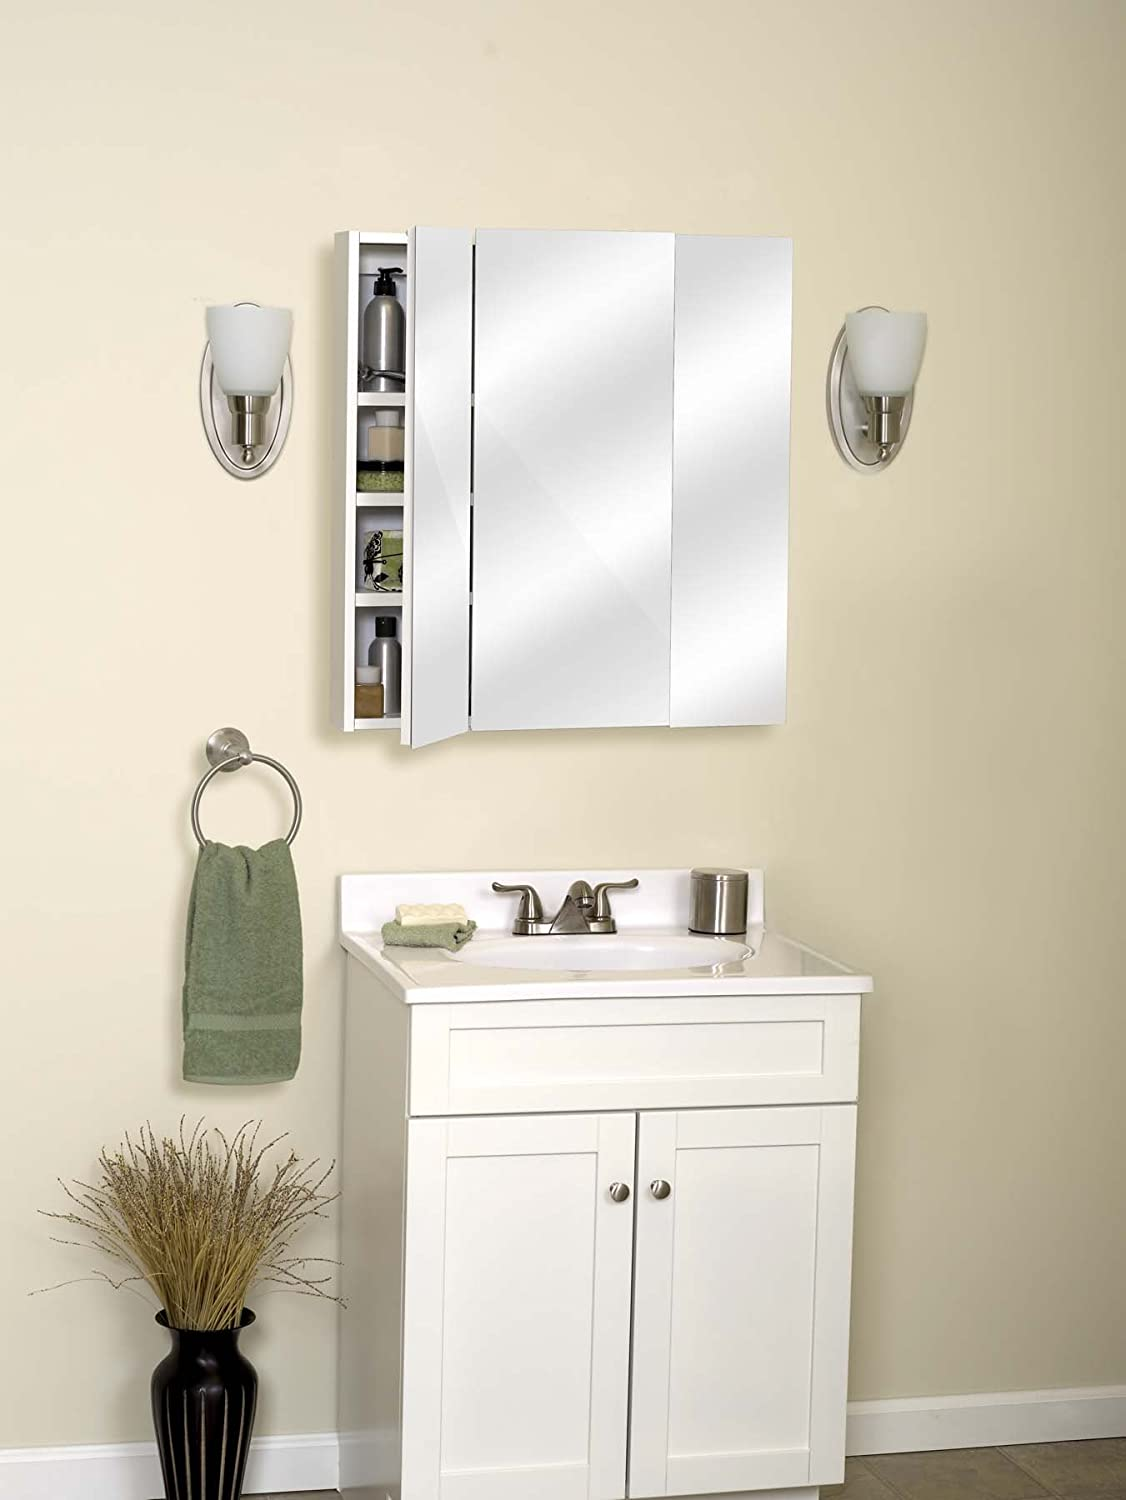 Amazon.com: Zenith M24, Beveled Tri-View Medicine Cabinet, Frameless ...